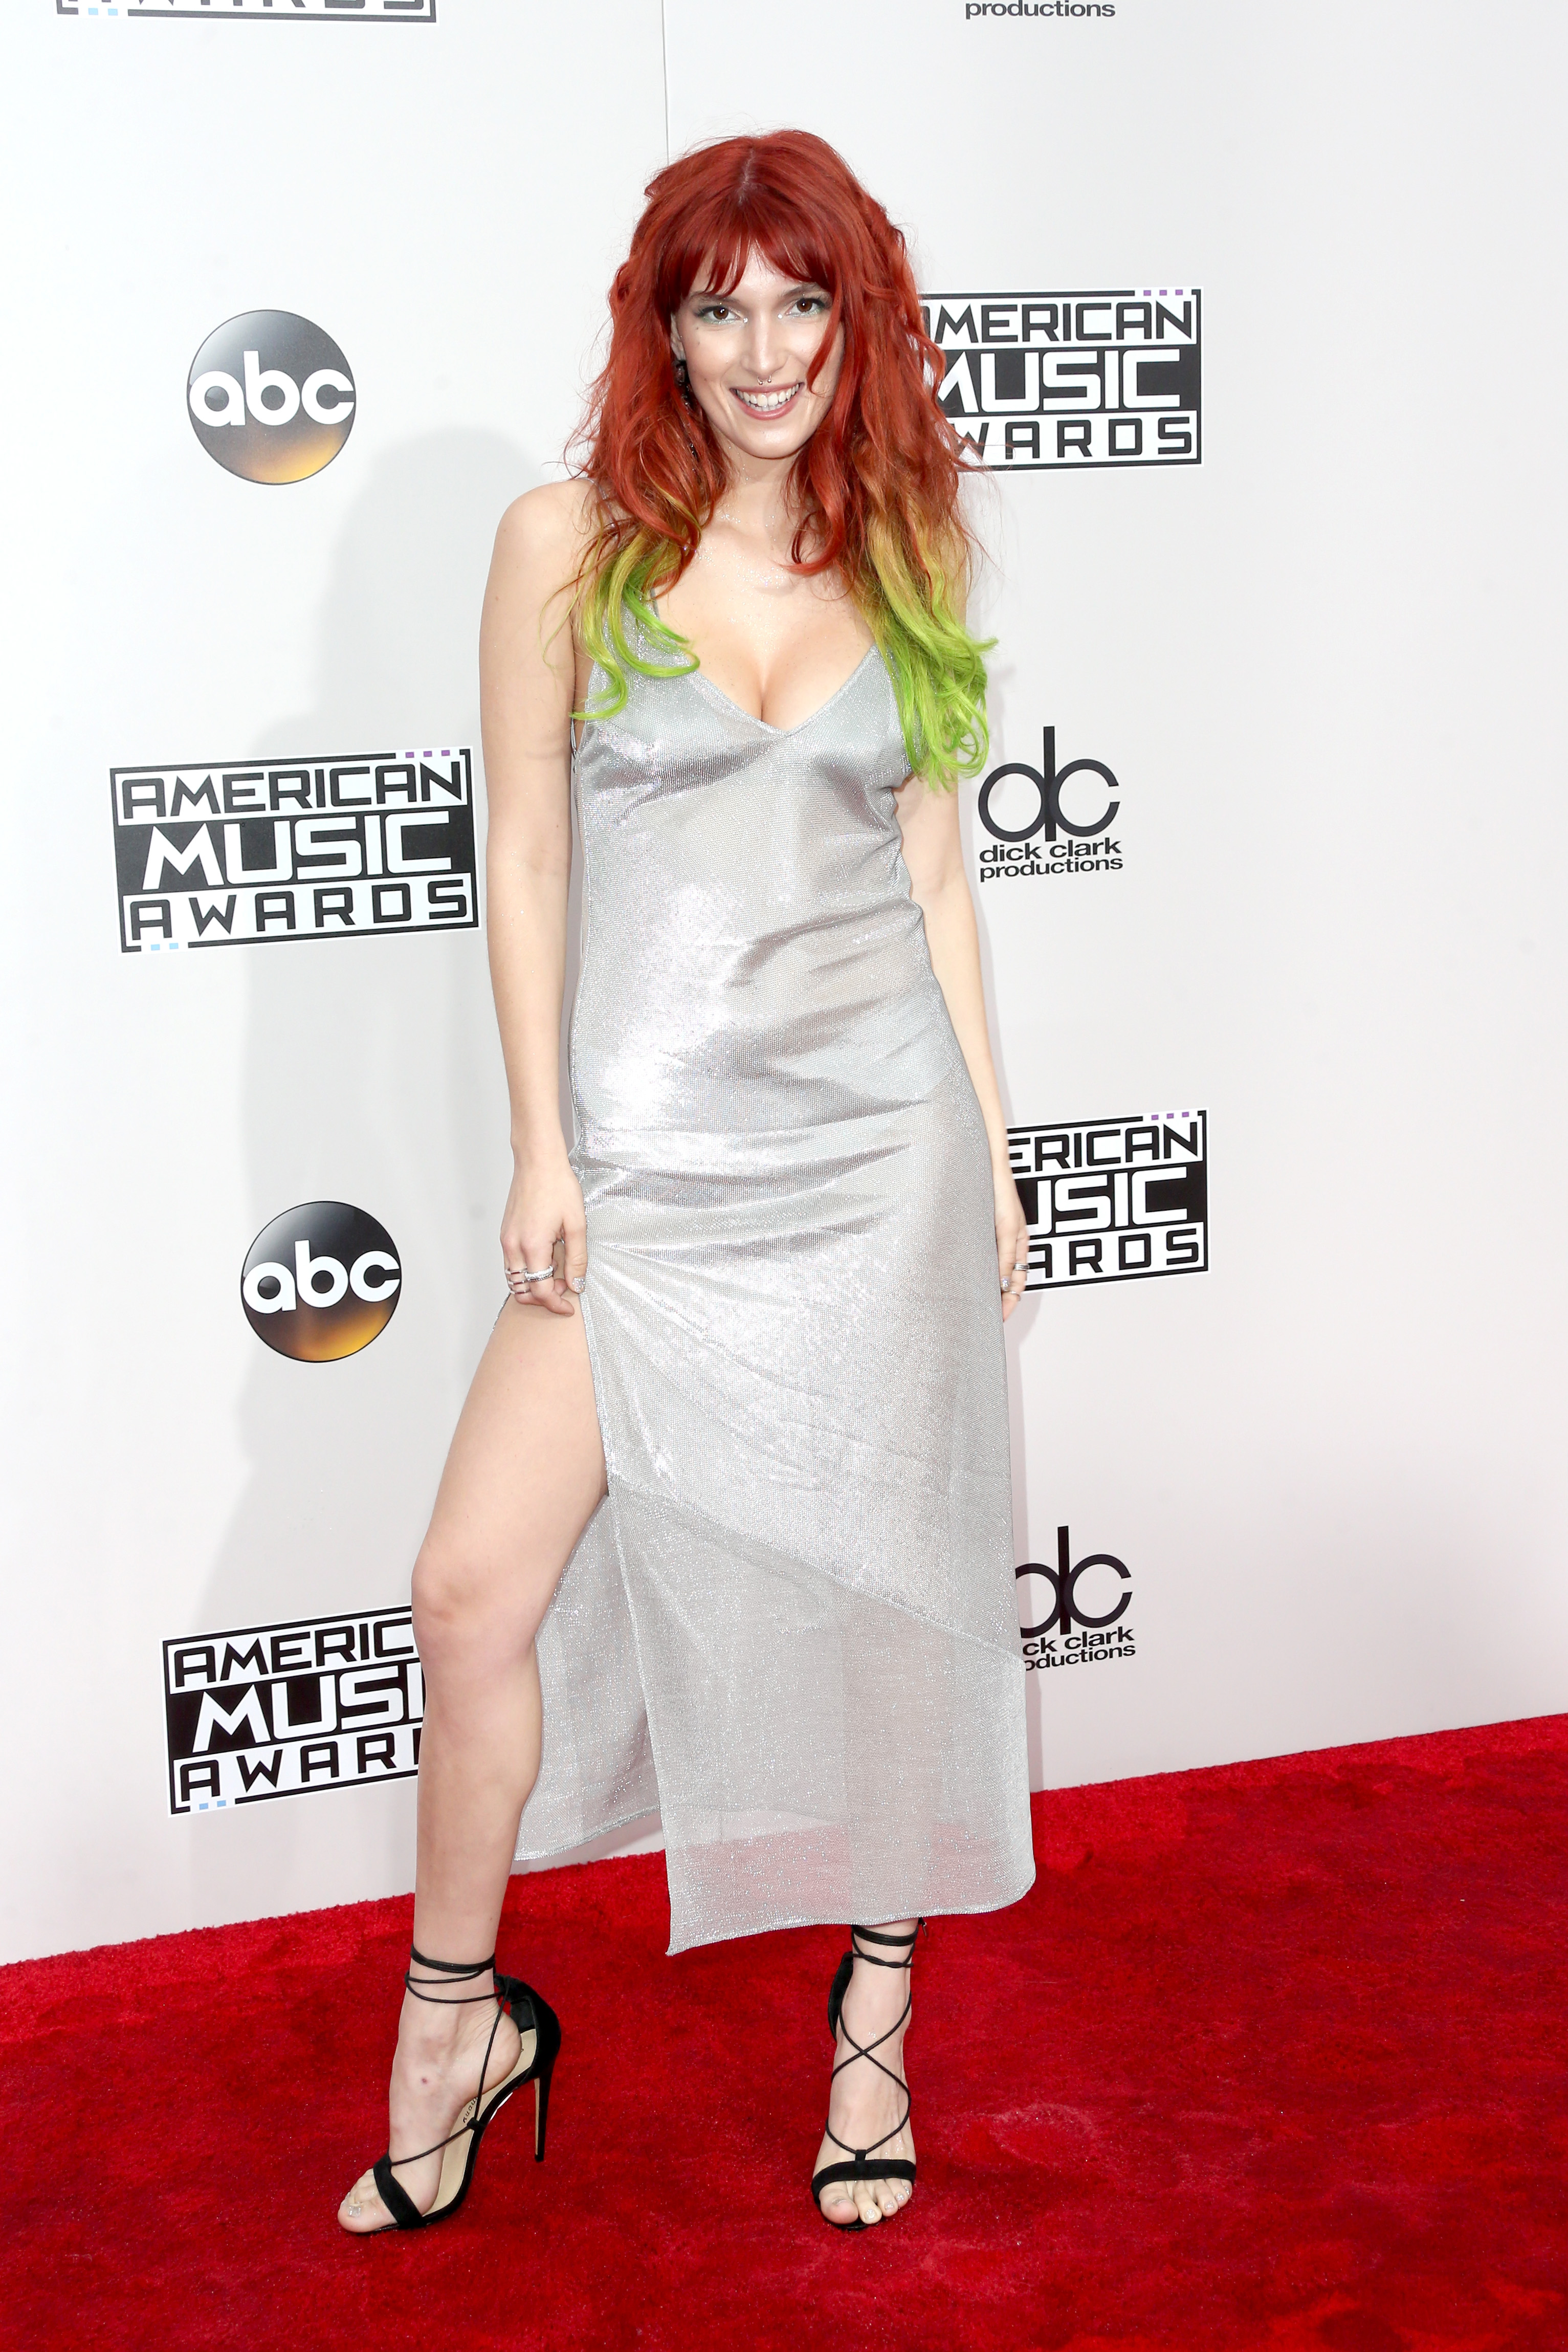 LOS ANGELES, CA - NOVEMBER 20: Actress Dani Thorne attends the 2016 American Music Awards at Microsoft Theater on November 20, 2016 in Los Angeles, California. (Photo by Frederick M. Brown/Getty Images)